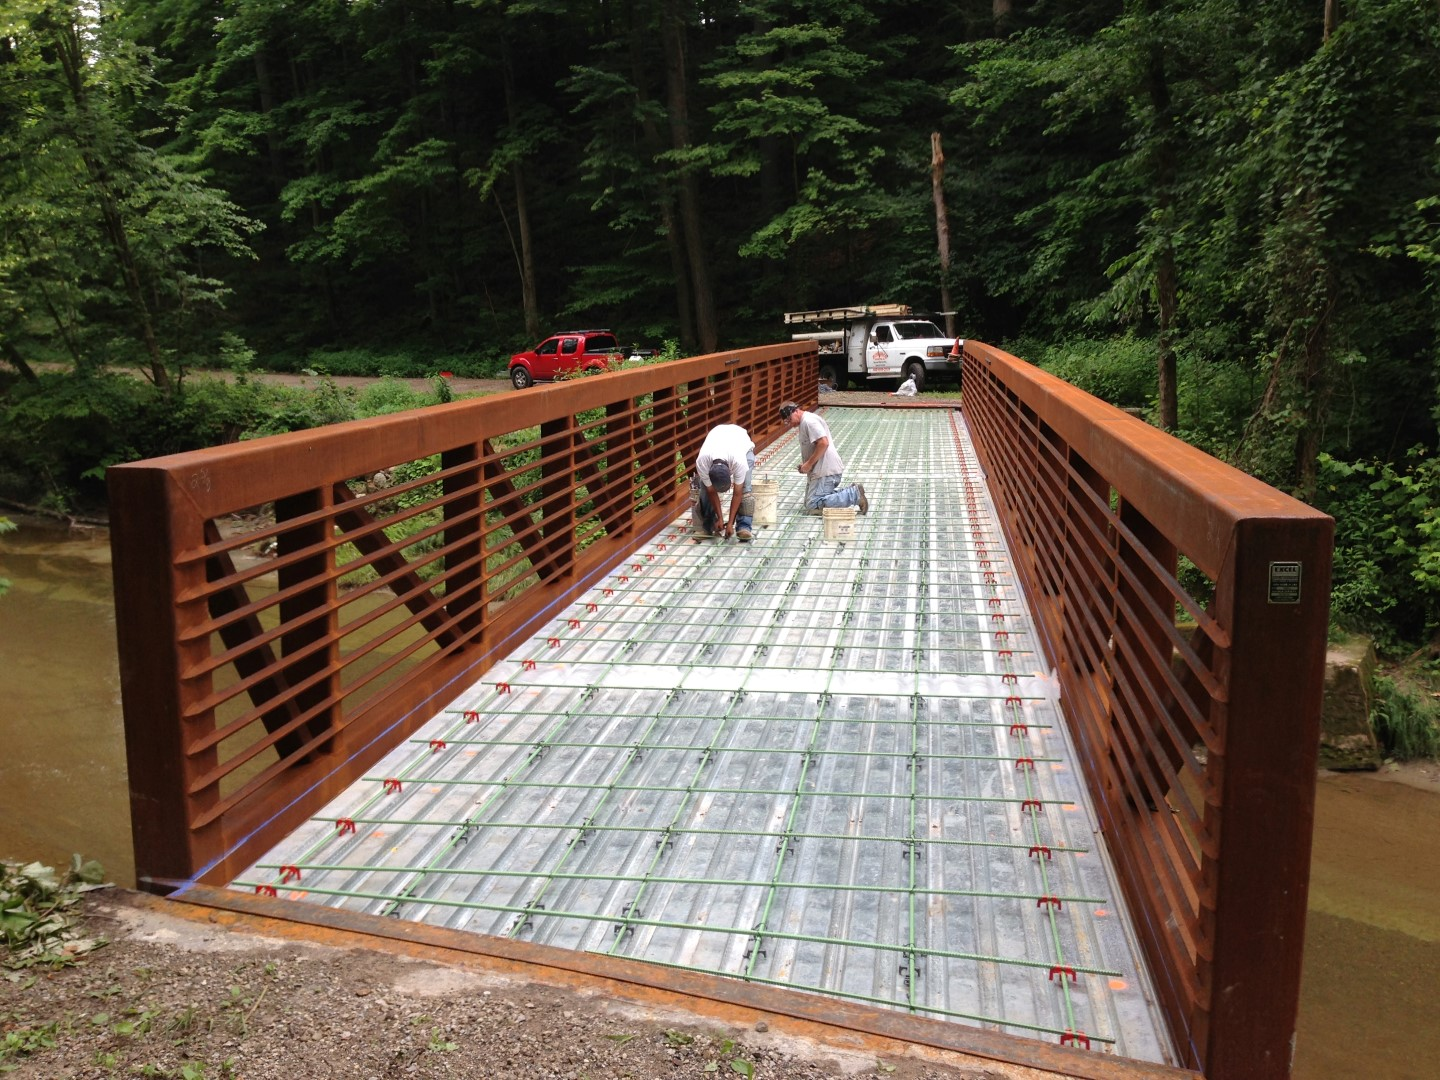 Rebar Reinforcement Concrete Bridge Kirtland Ohio